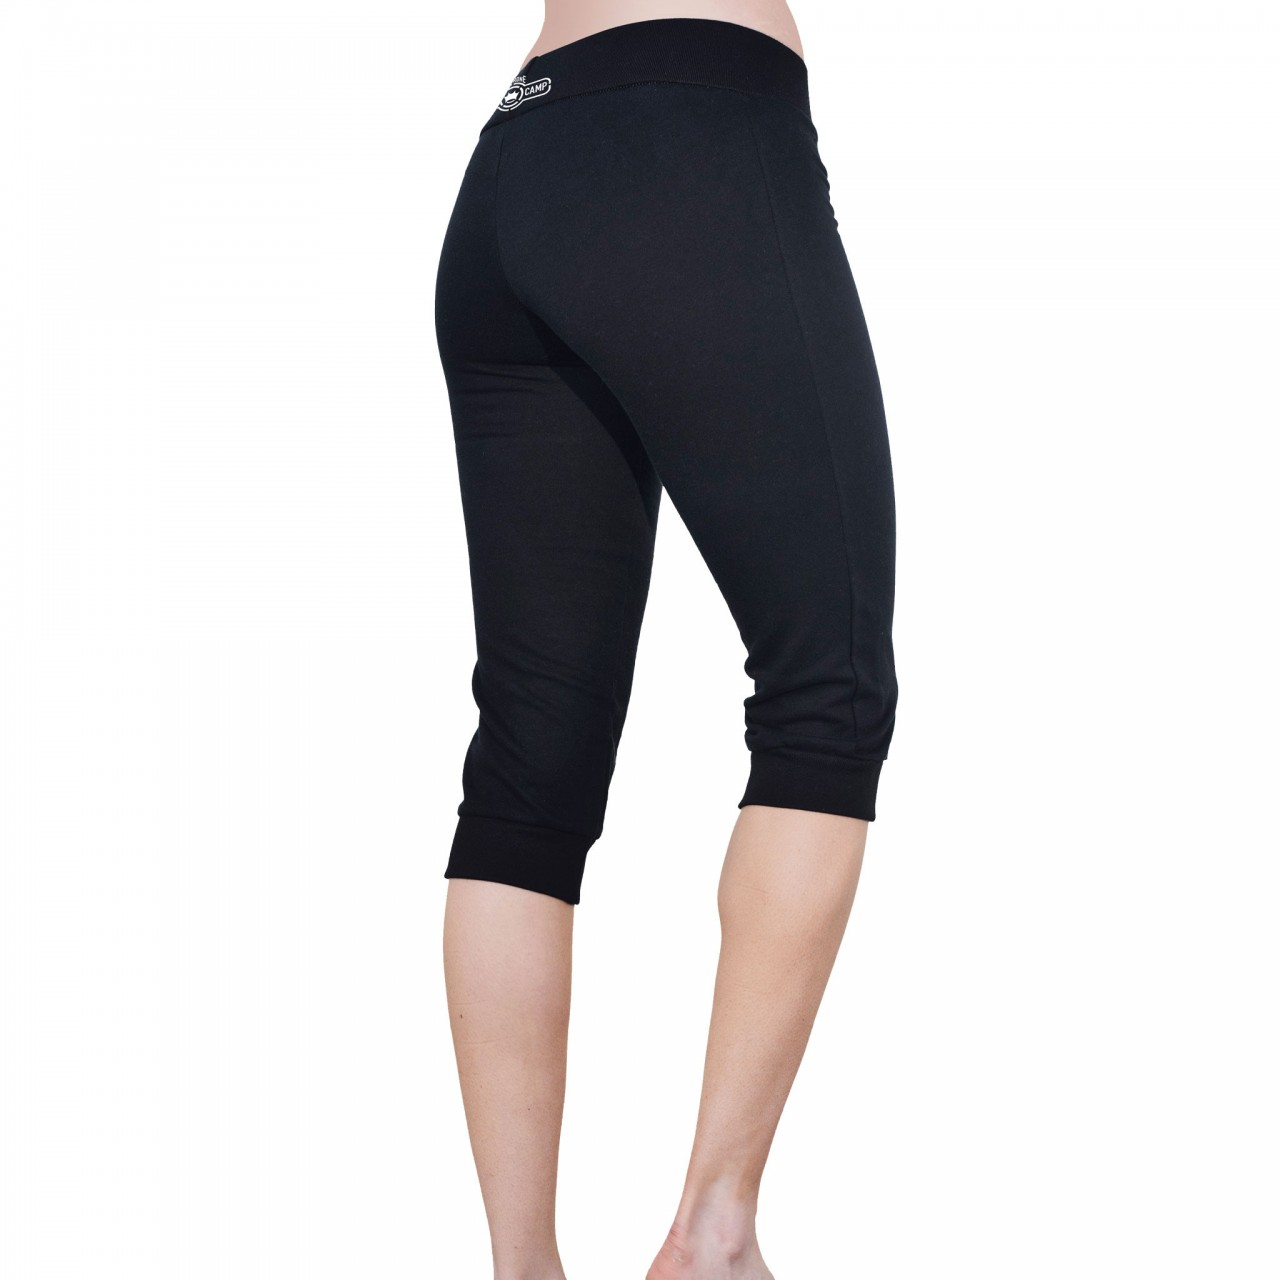 Dethrone Womens Fitness Pants Short - Black